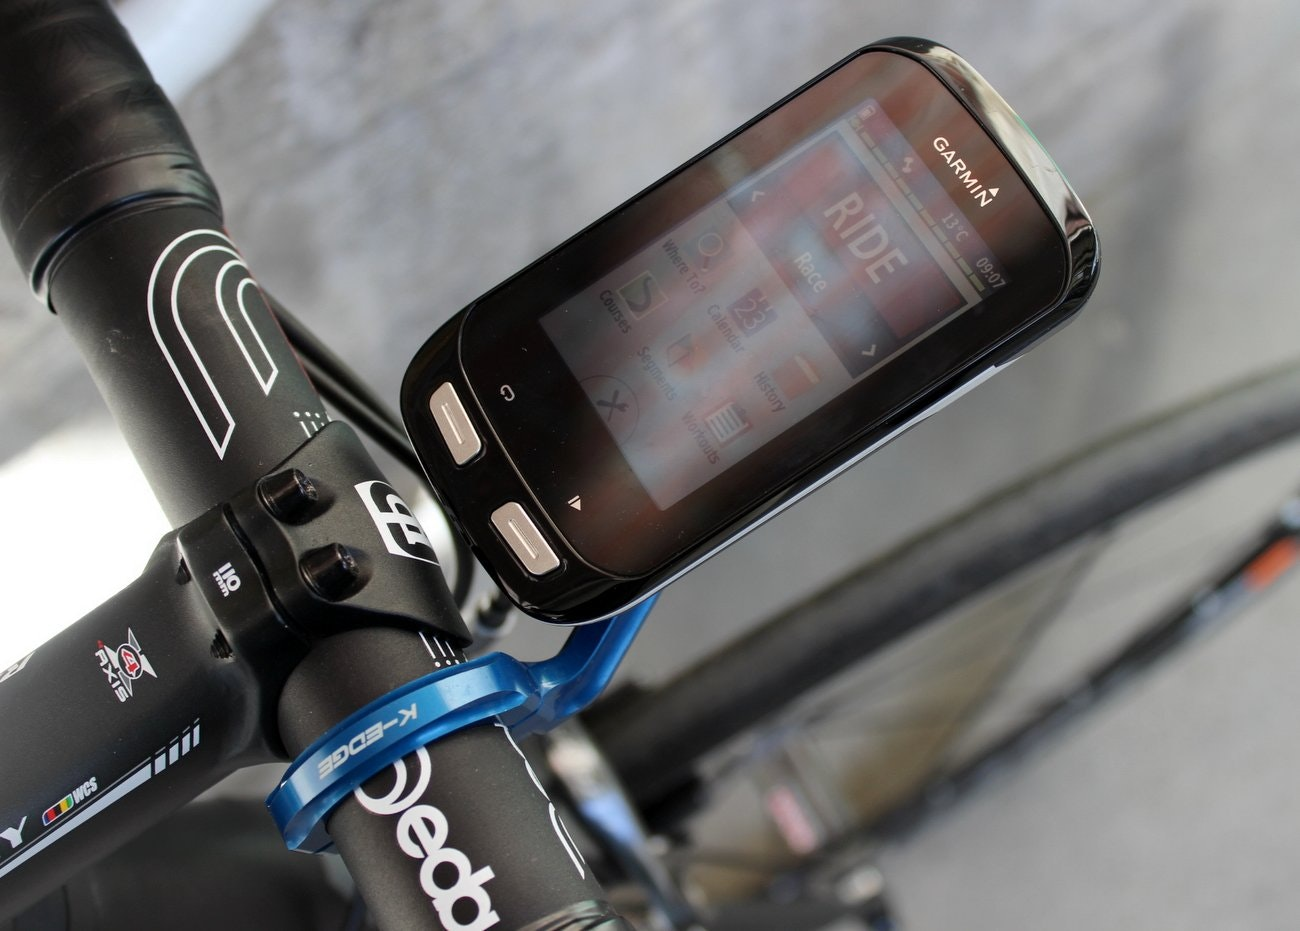 K-Edge XL out-front computer mount for Garmin Edge 1000 (Pic: George Scott/Factory Media)